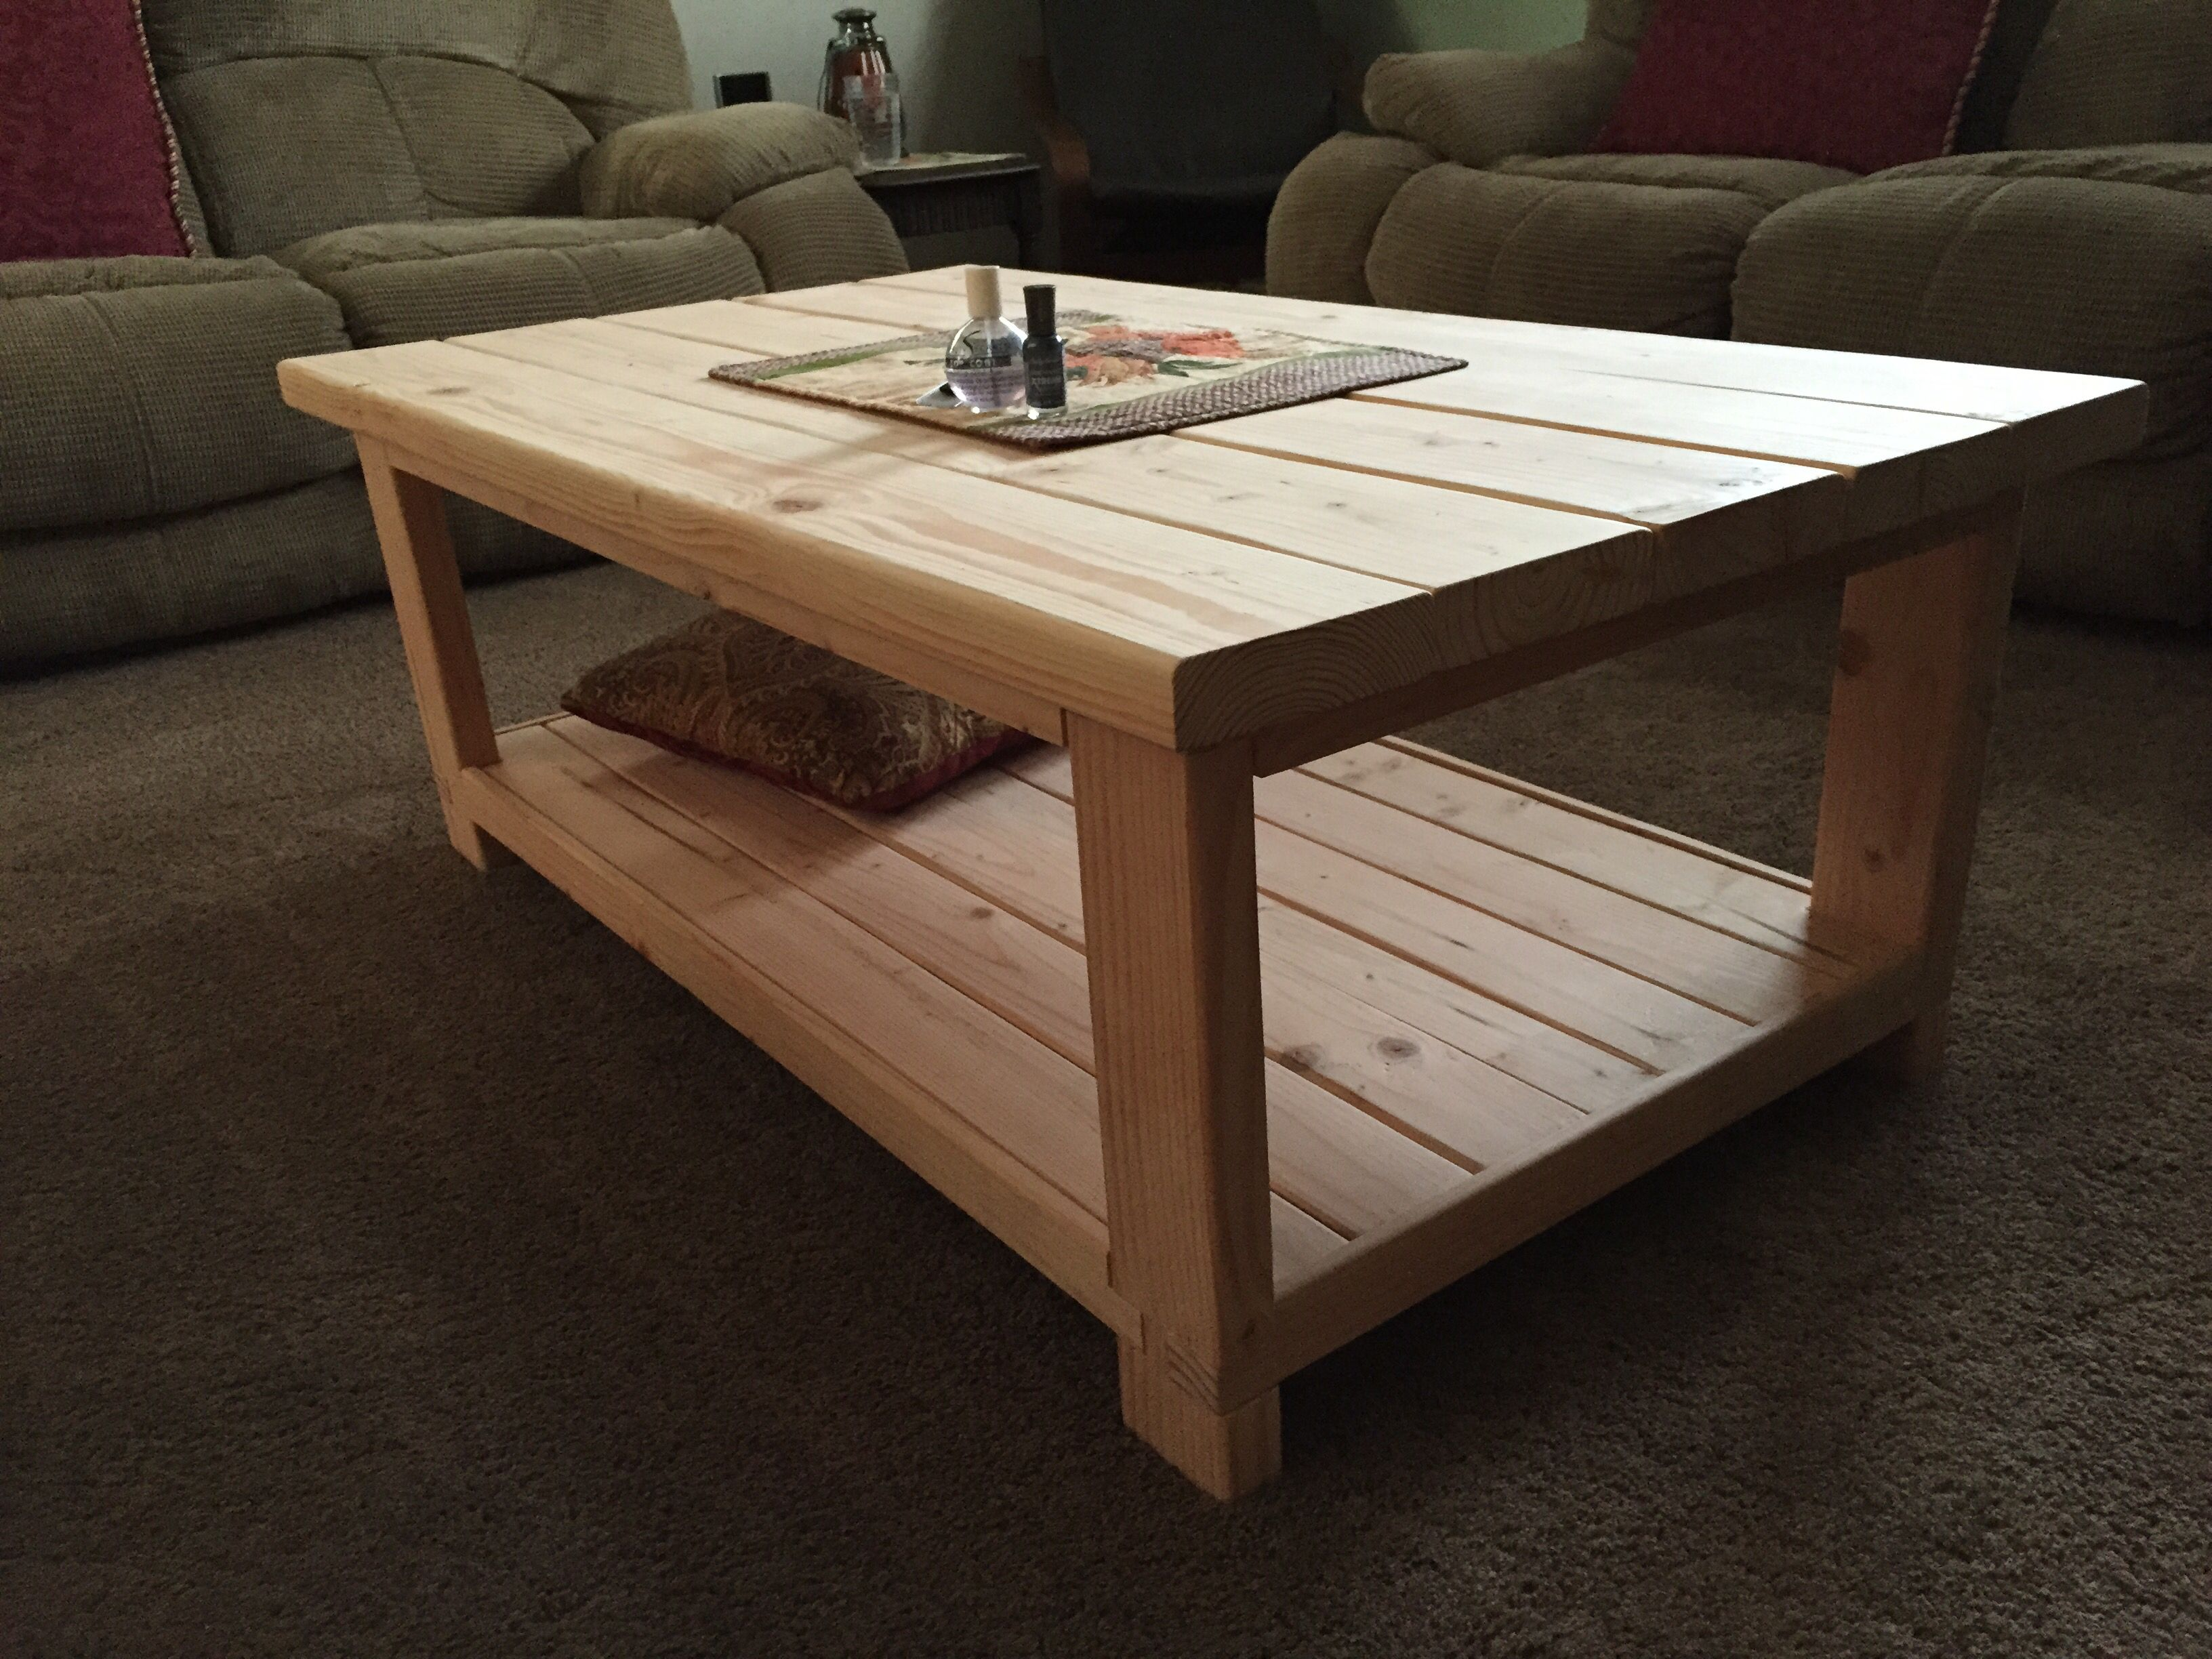 2x4 Base With 2x6 Top Rustic Coffee Table Coffee Table Coffee Table Farmhouse Reclaimed Wood Coffee Table